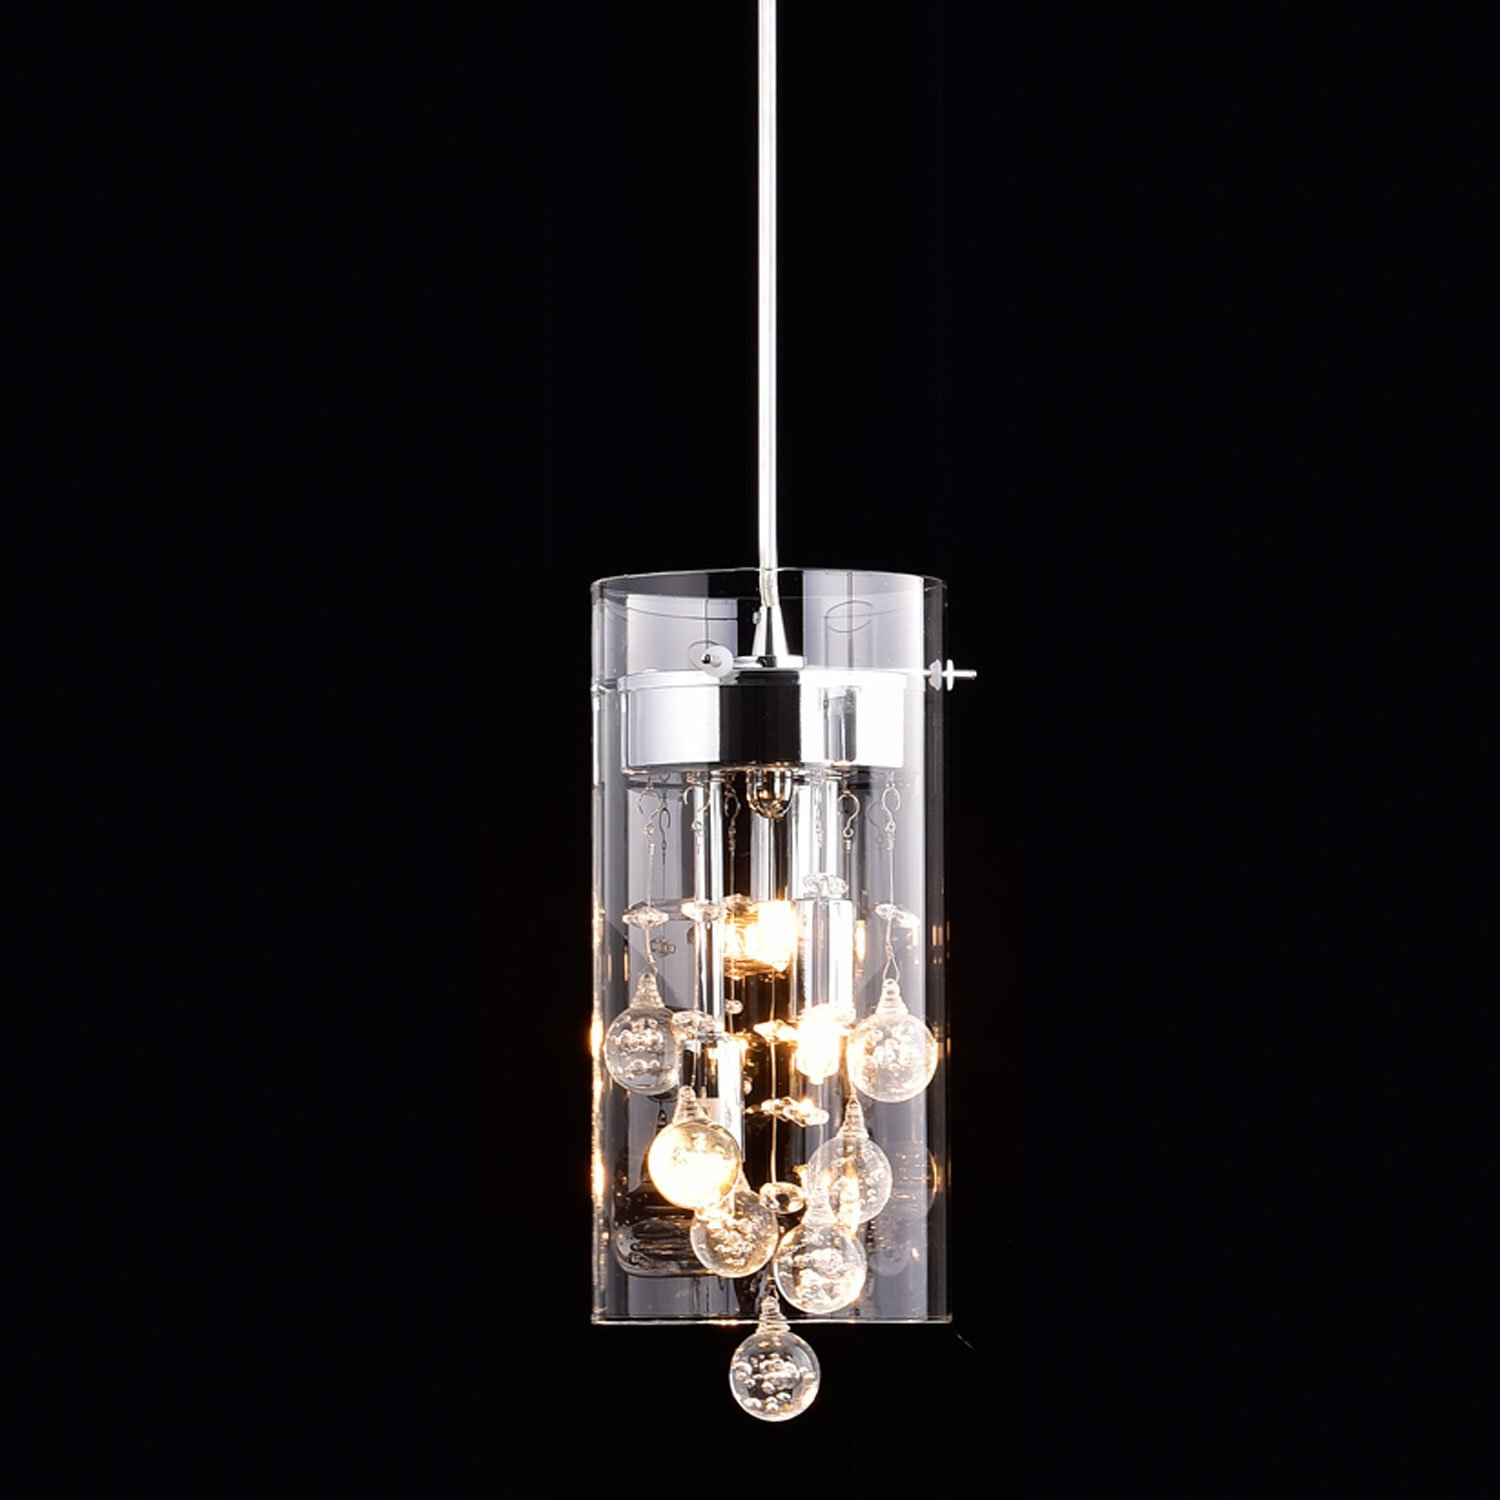 kitchen chandelier lighting deep fryer modern contemporary pendant for minimalist house